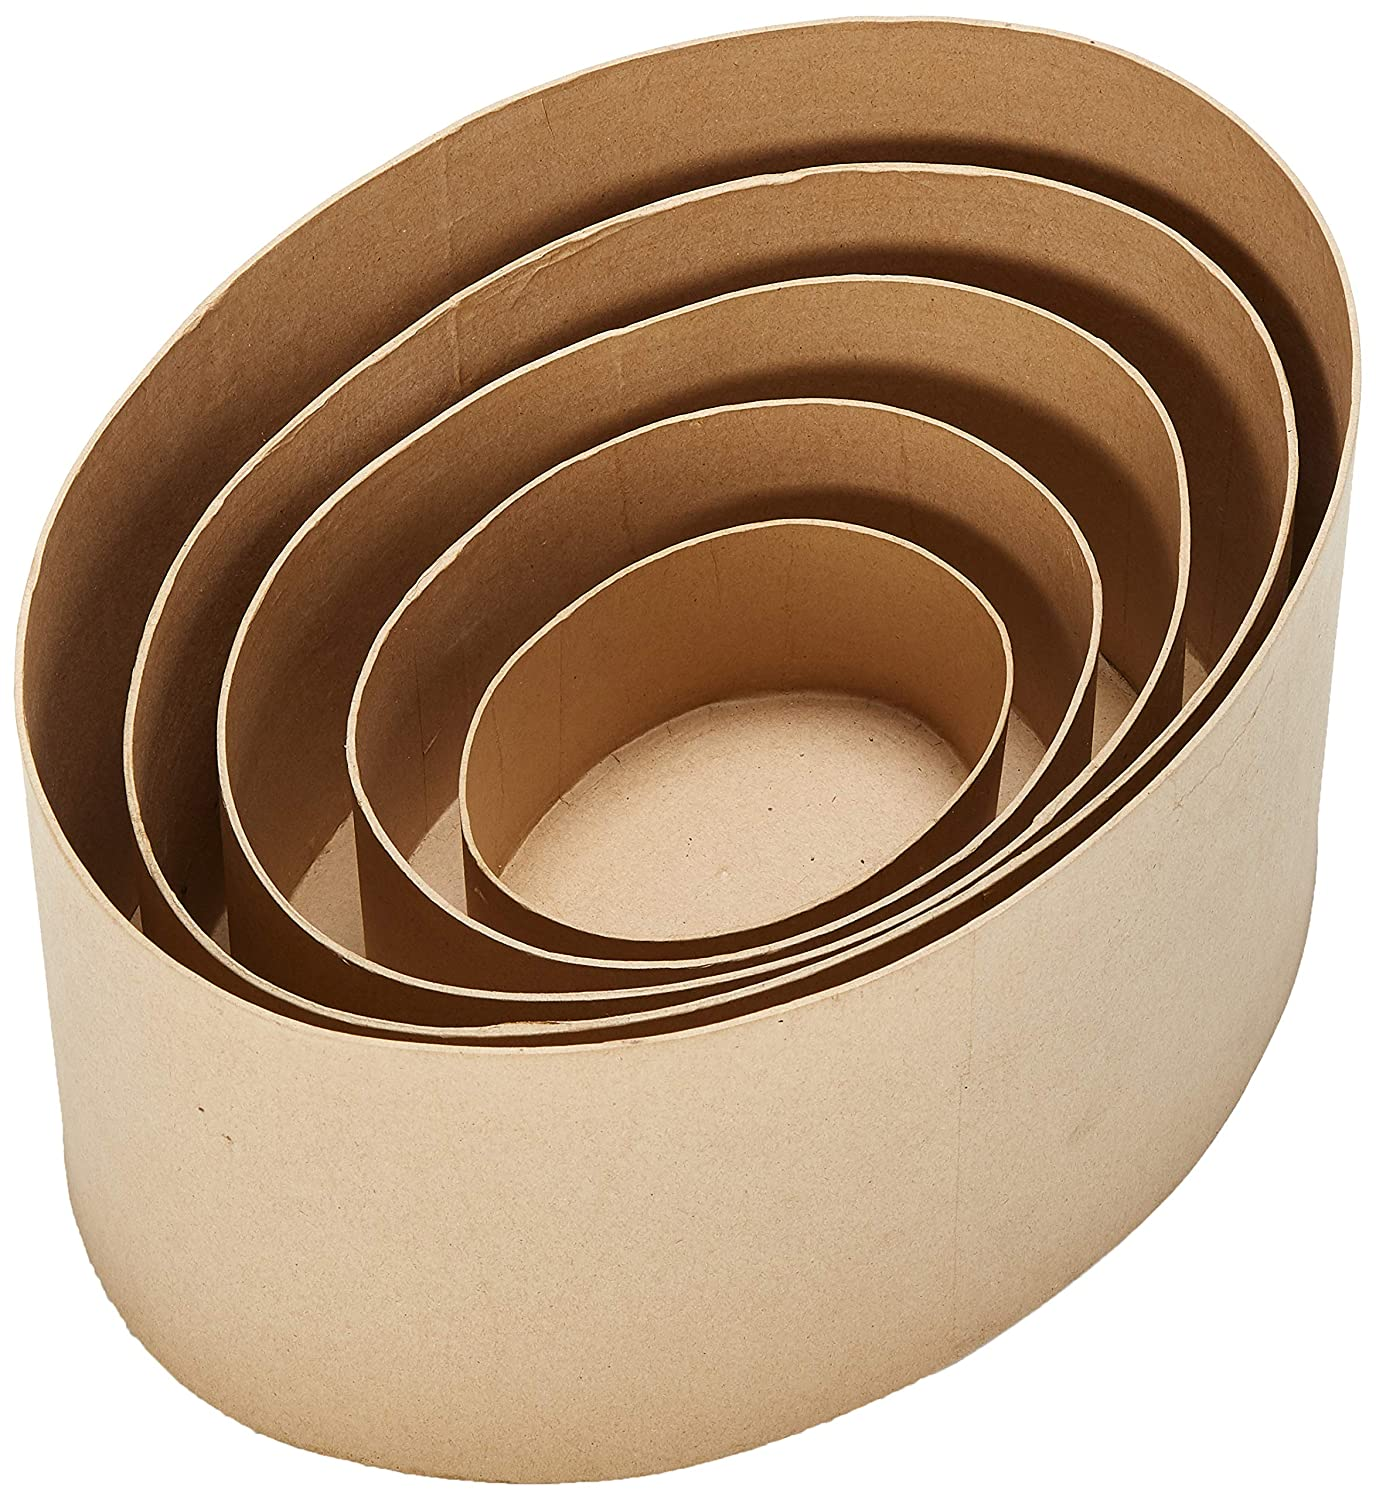 Darice 2849-12 Paper Mache Oval Box Set 5